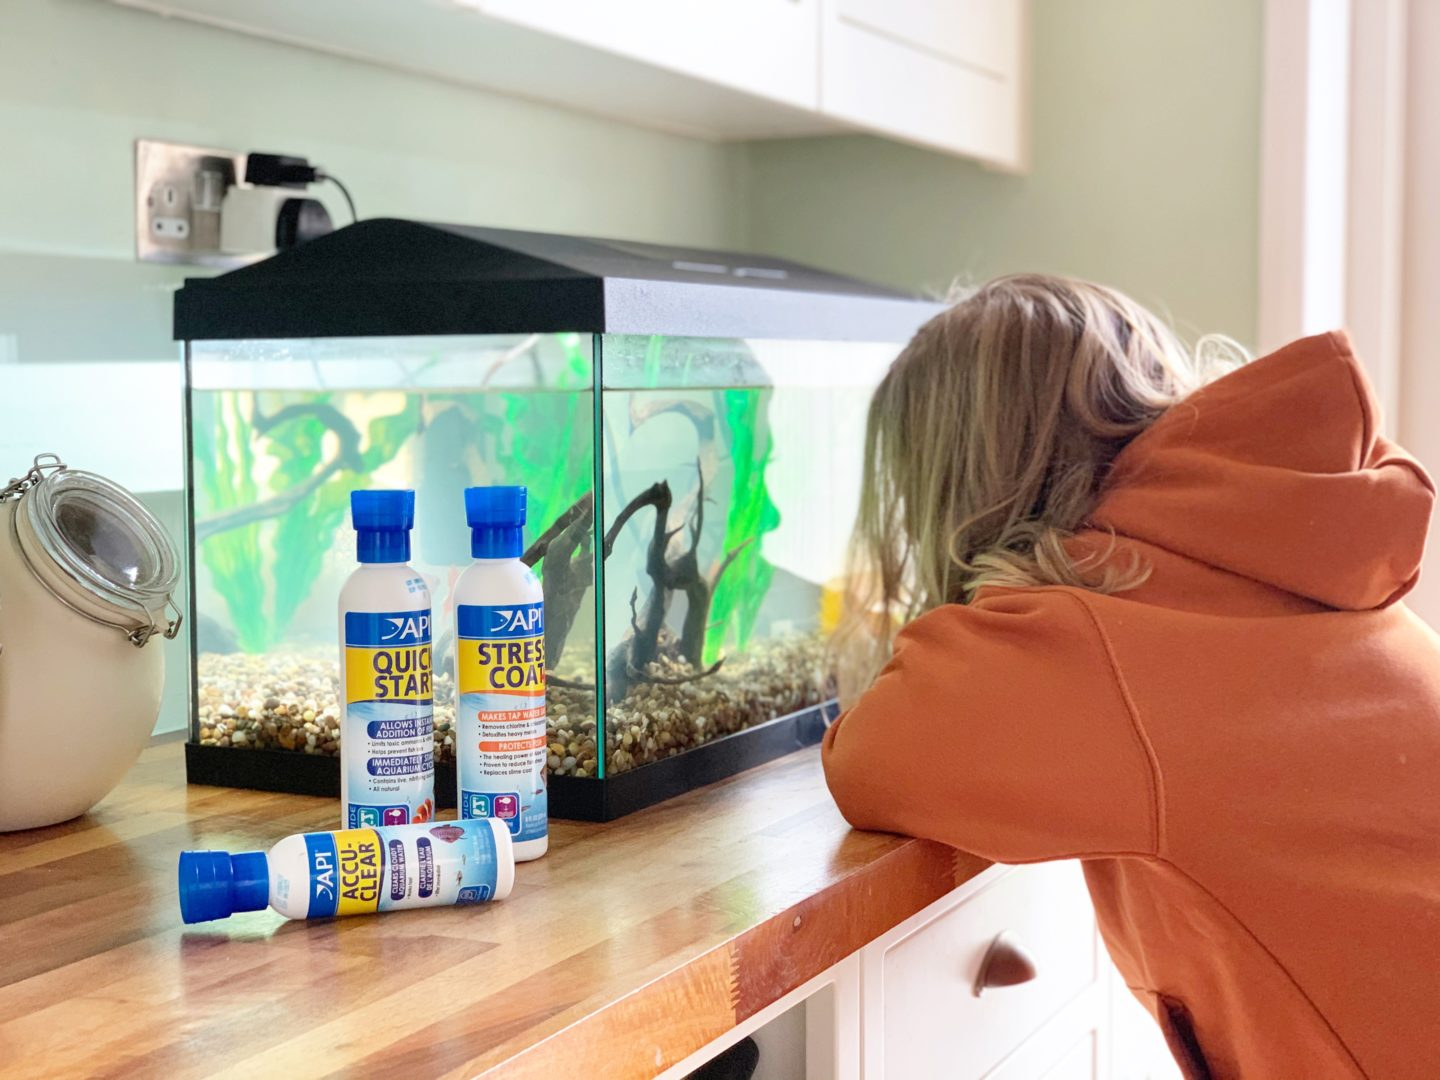 5 tips for setting up an Aquarium with kids